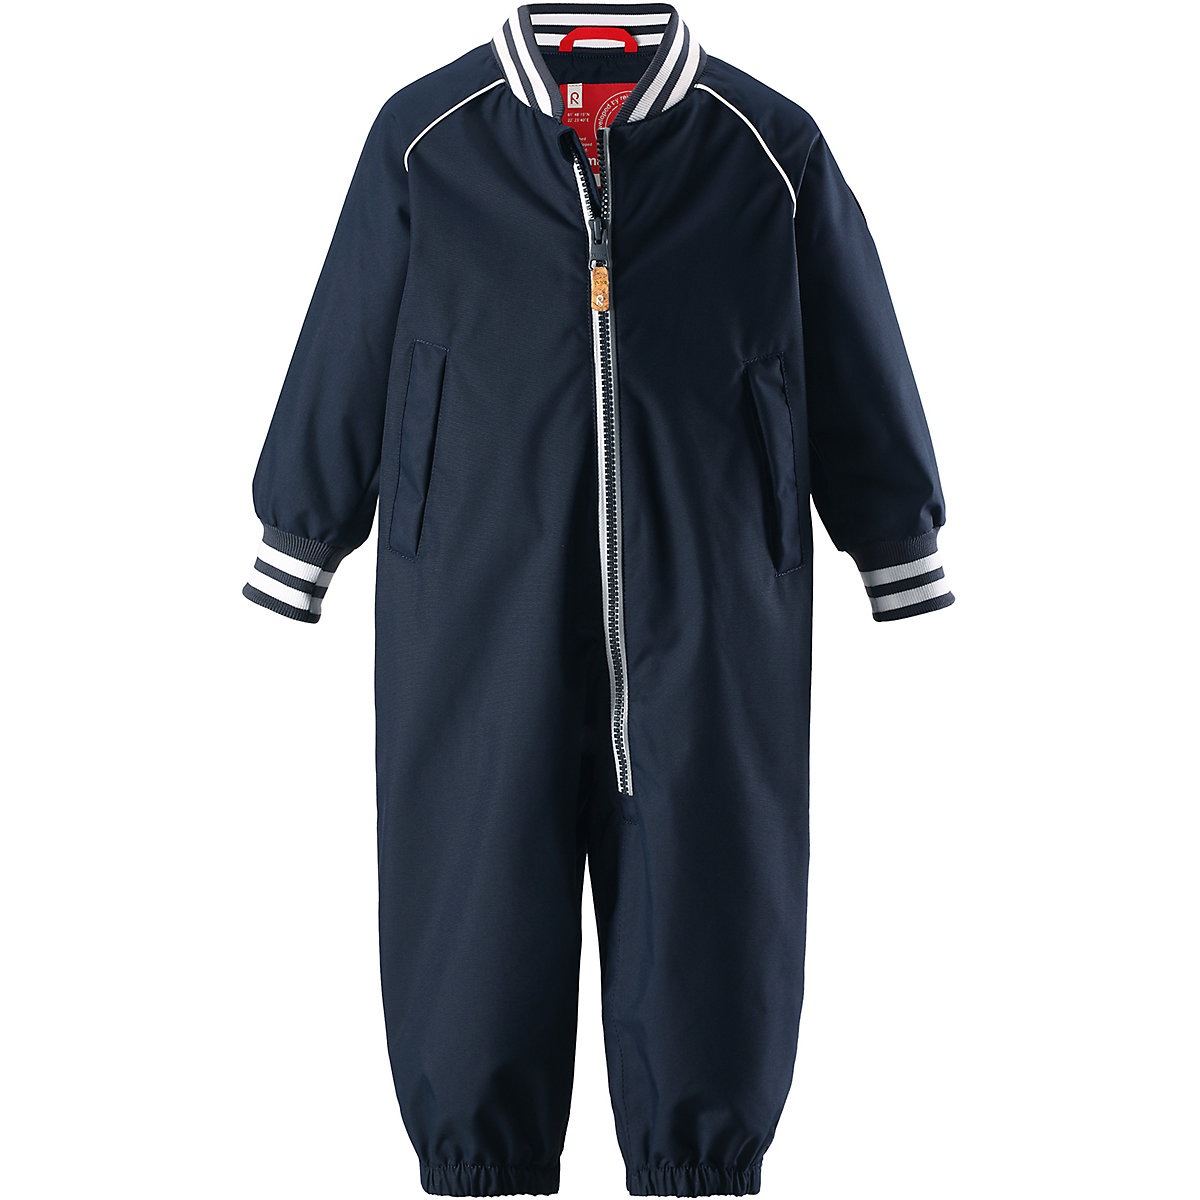 REIMA Overalls  7628261 for boys and girls polyester winter reima overalls 7628261 for boys and girls polyester winter